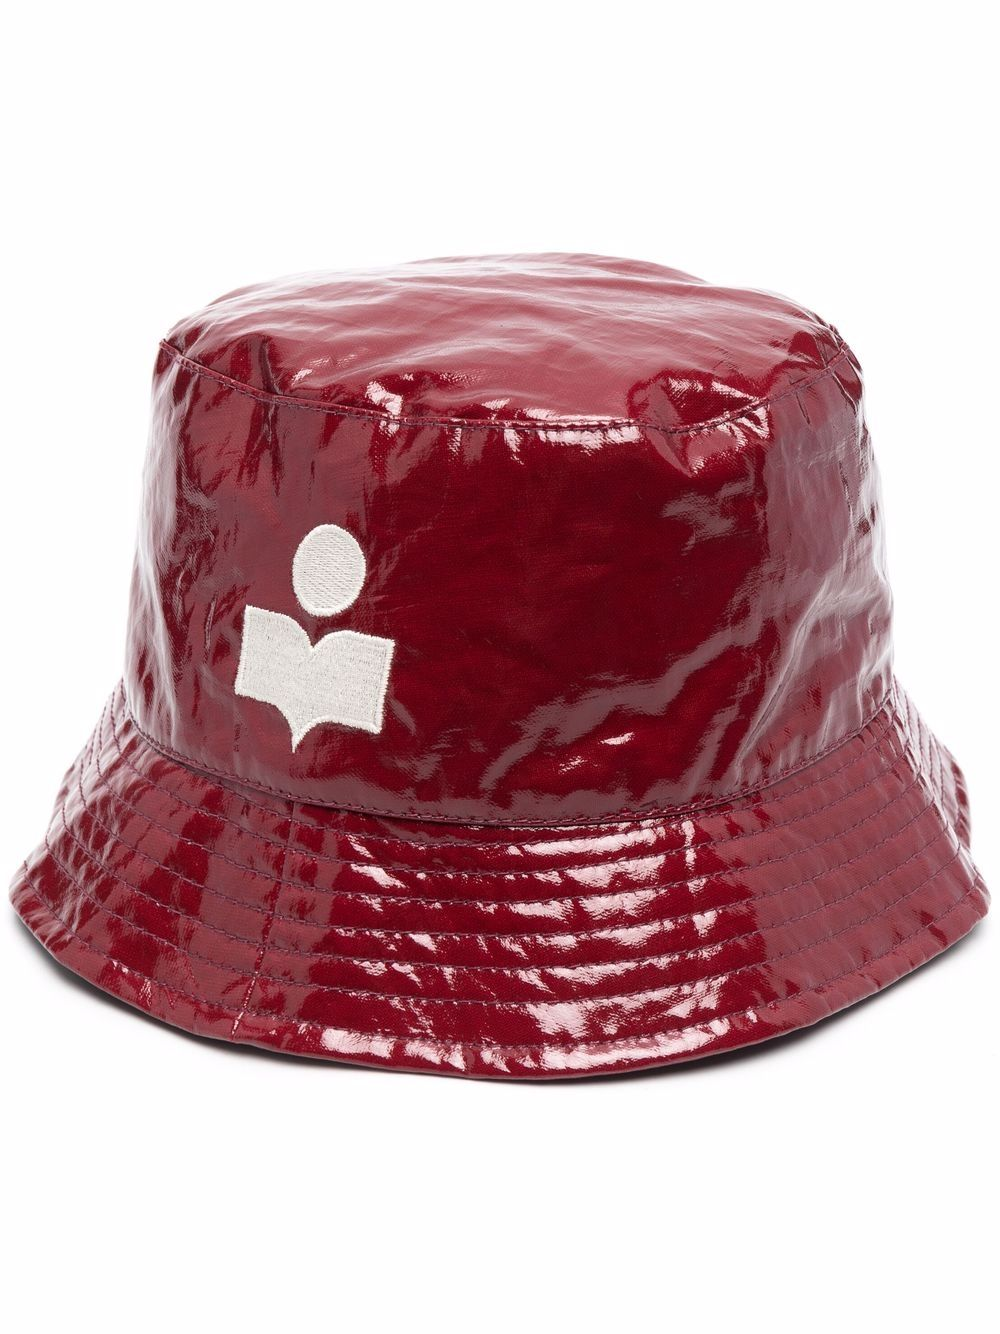 haleyh hat unisex red ISABEL MARANT   Hats   21ACU0032-21A010J80BY